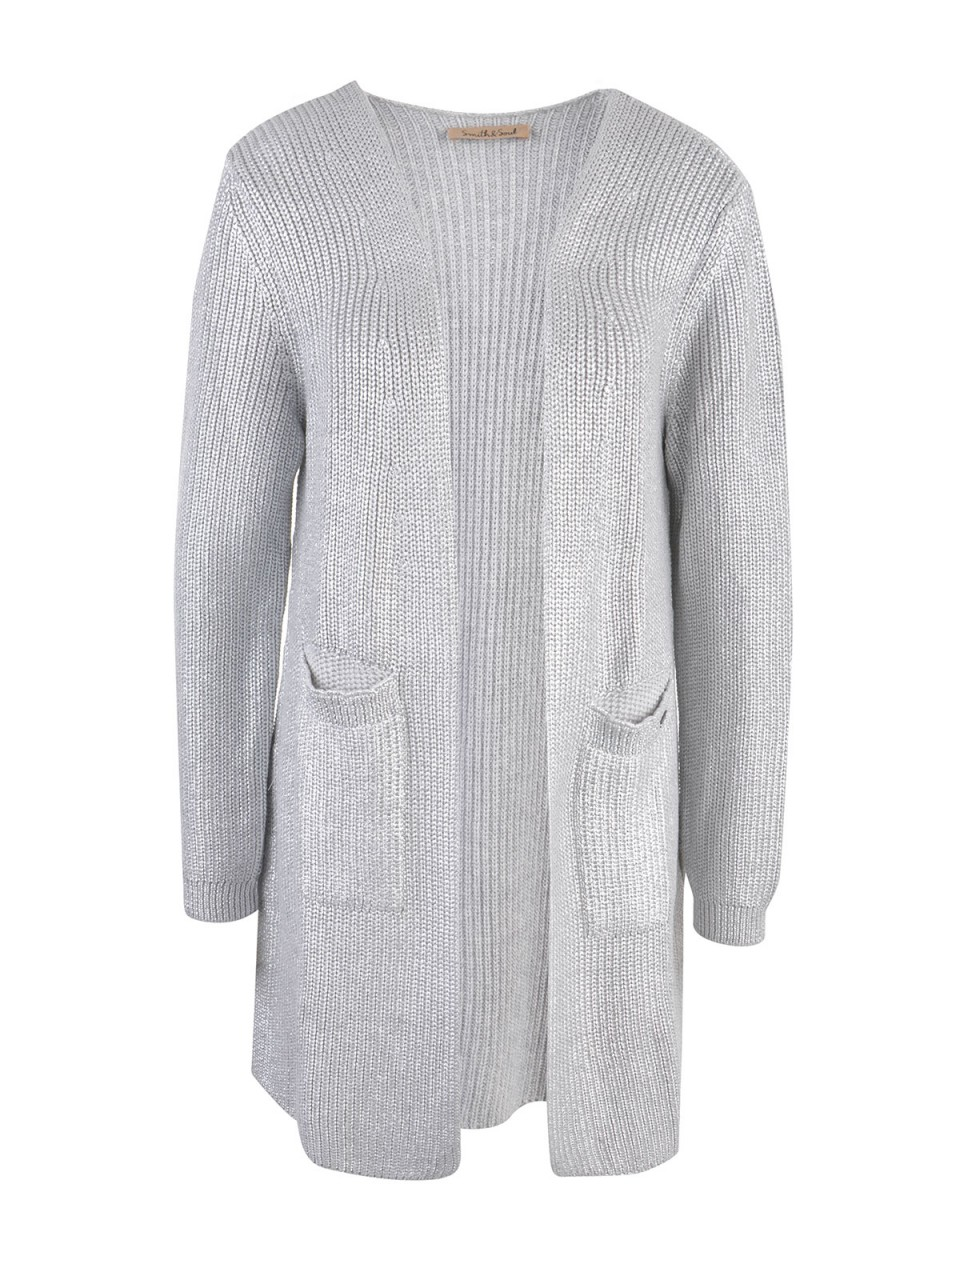 Jacken - SMITH SOUL Damen Cardigan, silber  - Onlineshop Designermode.com